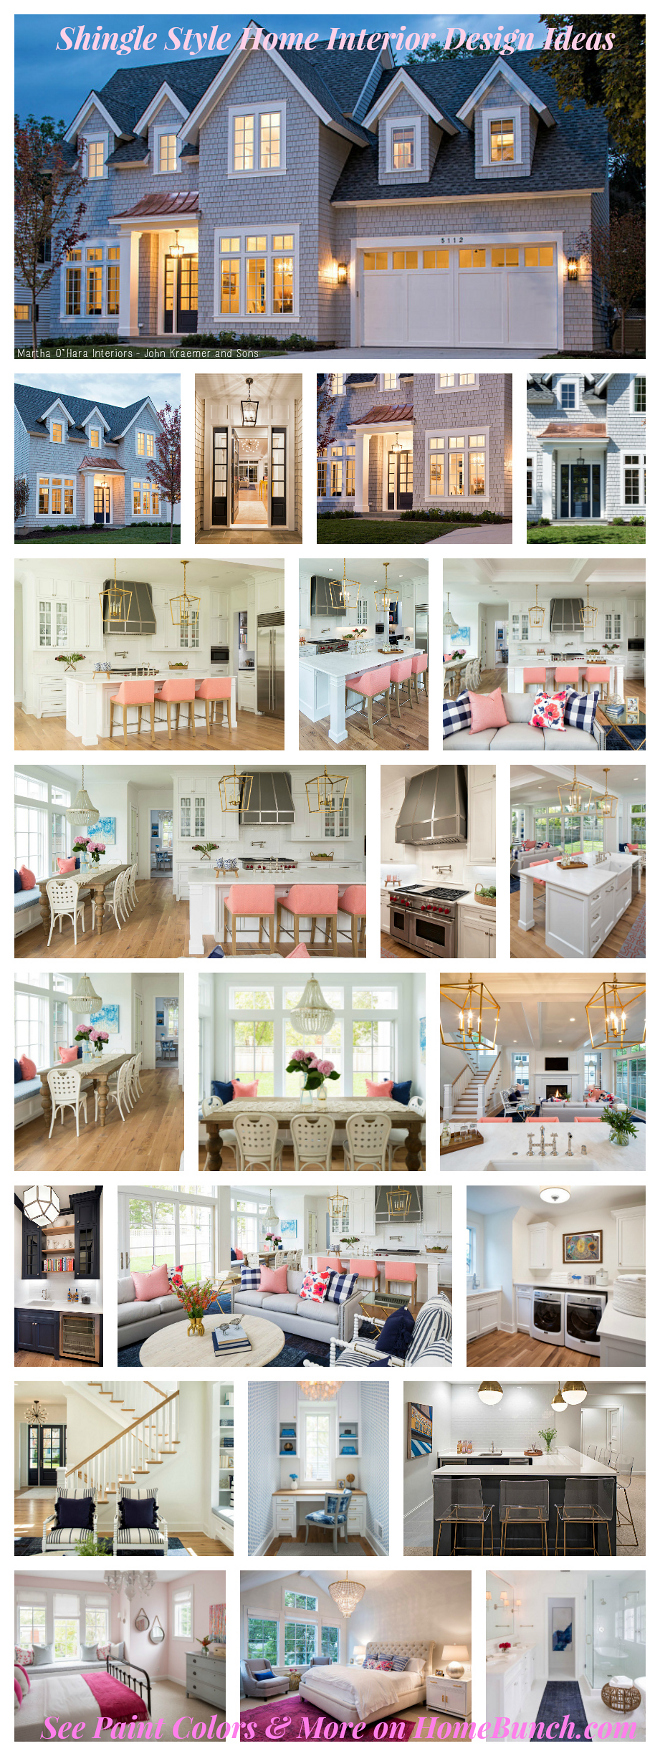 Coastal Farmhouse Interior Design Home Bunch Interior Design Ideas